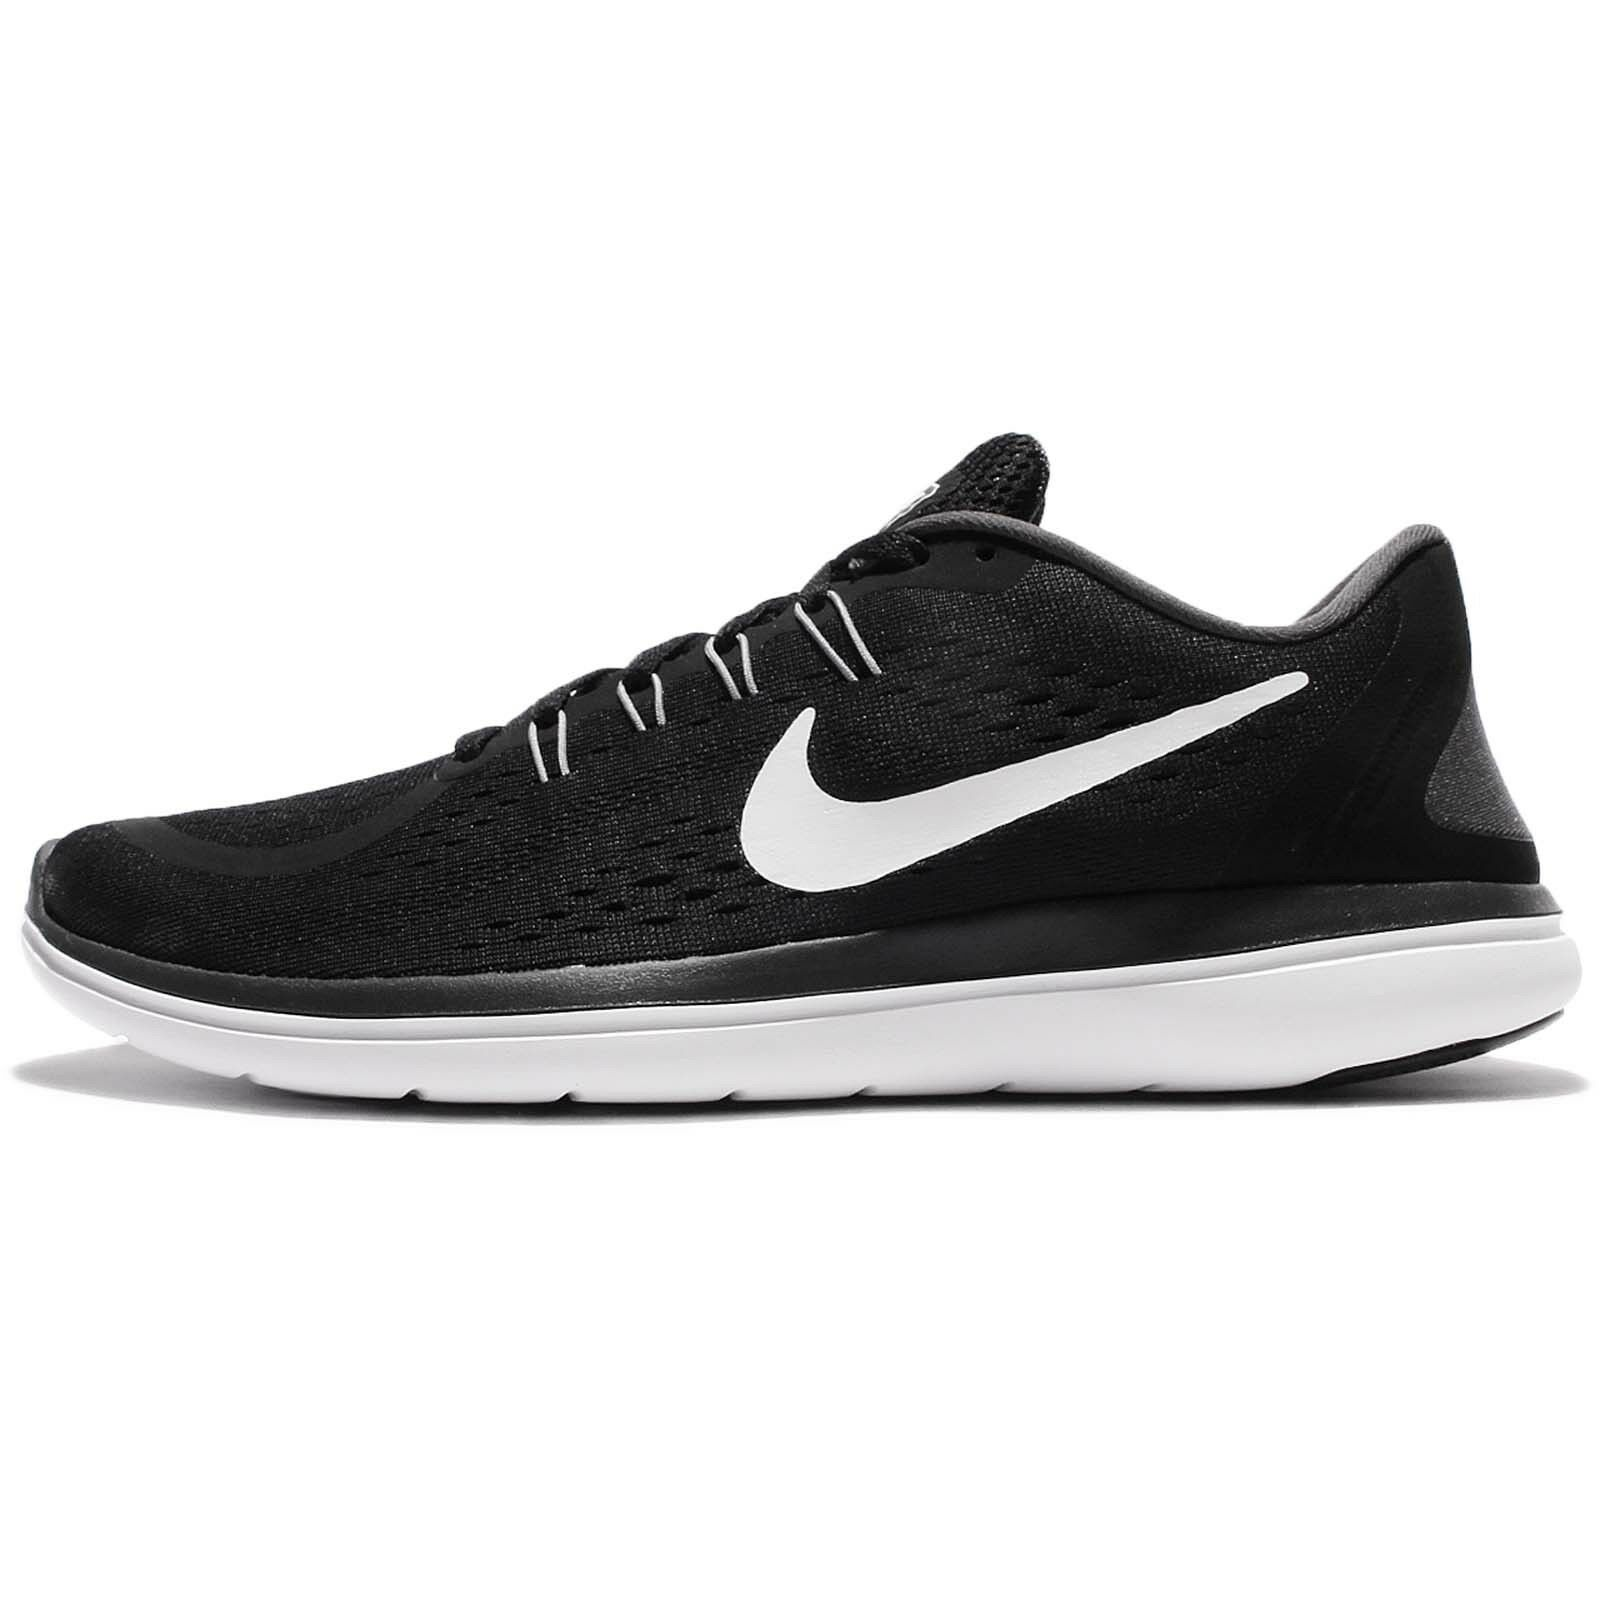 Nike Flex 2017 RN Run Black White Men Running Shoes Sneakers Trainers 898457-001 Great discount